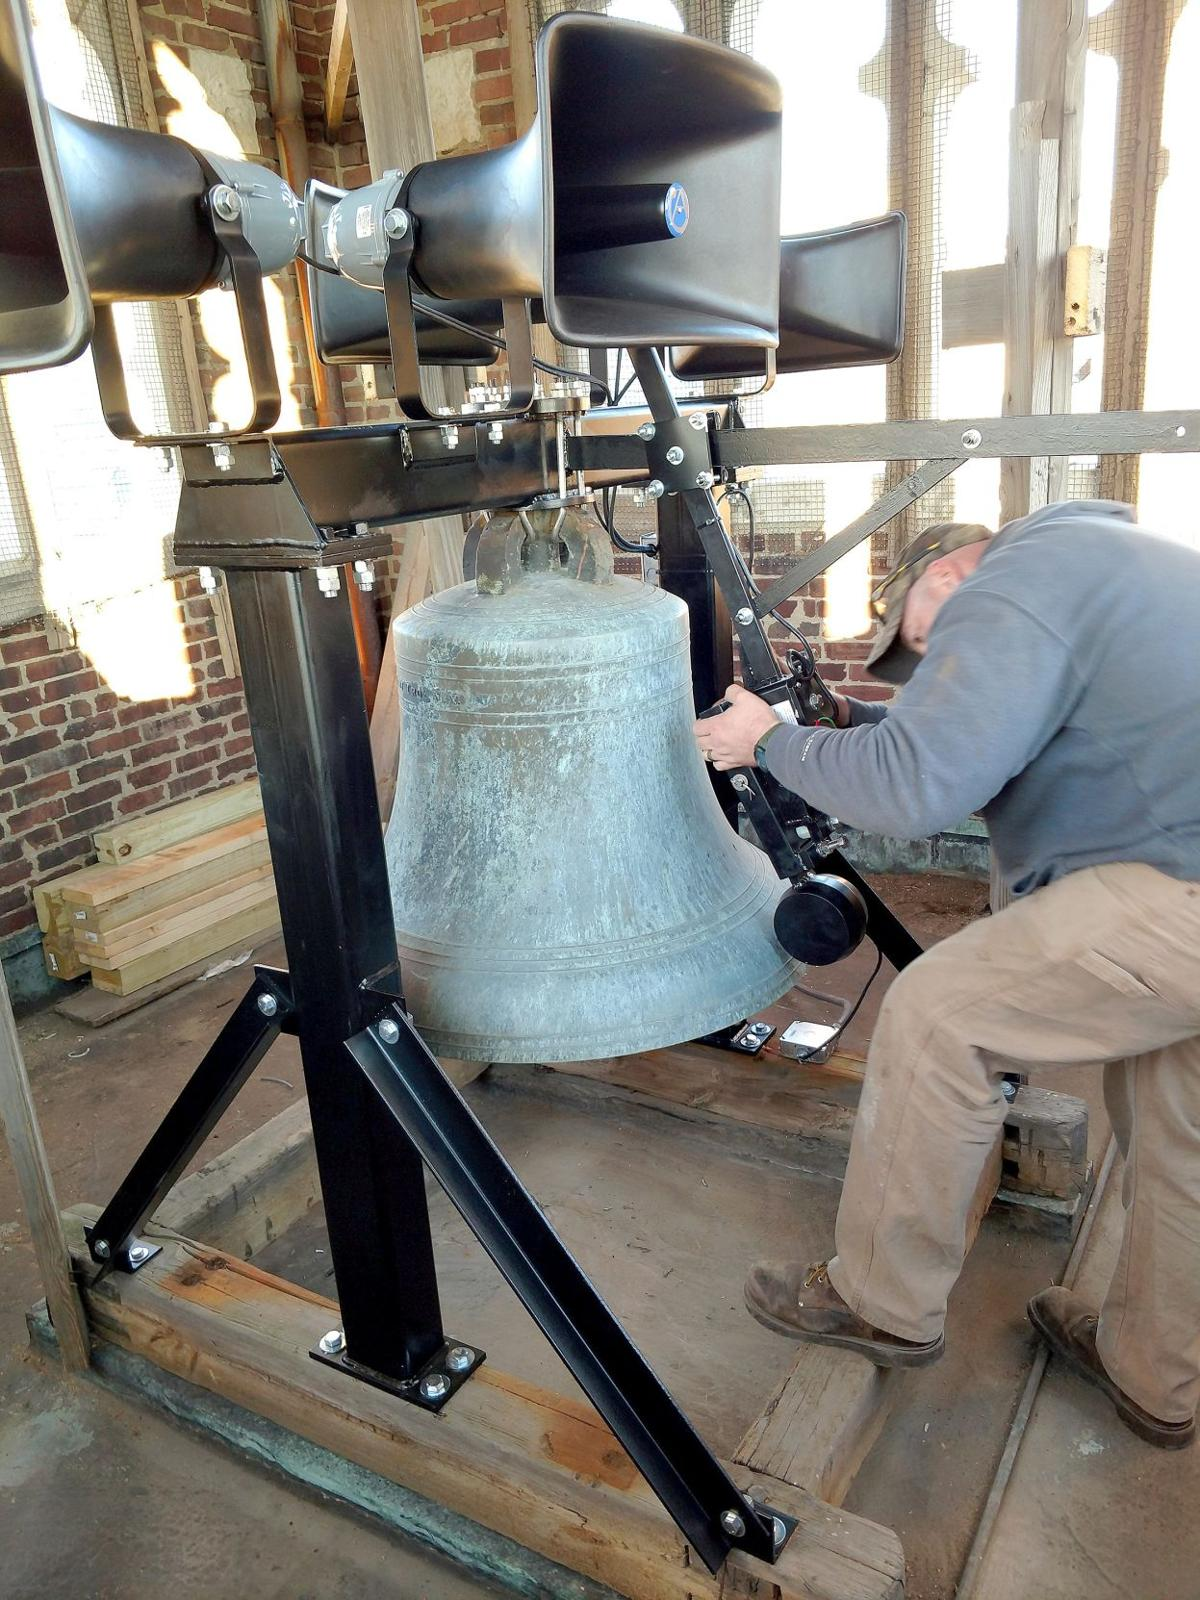 Jingle bells: Restoration done in time to ring in Christmas Eve